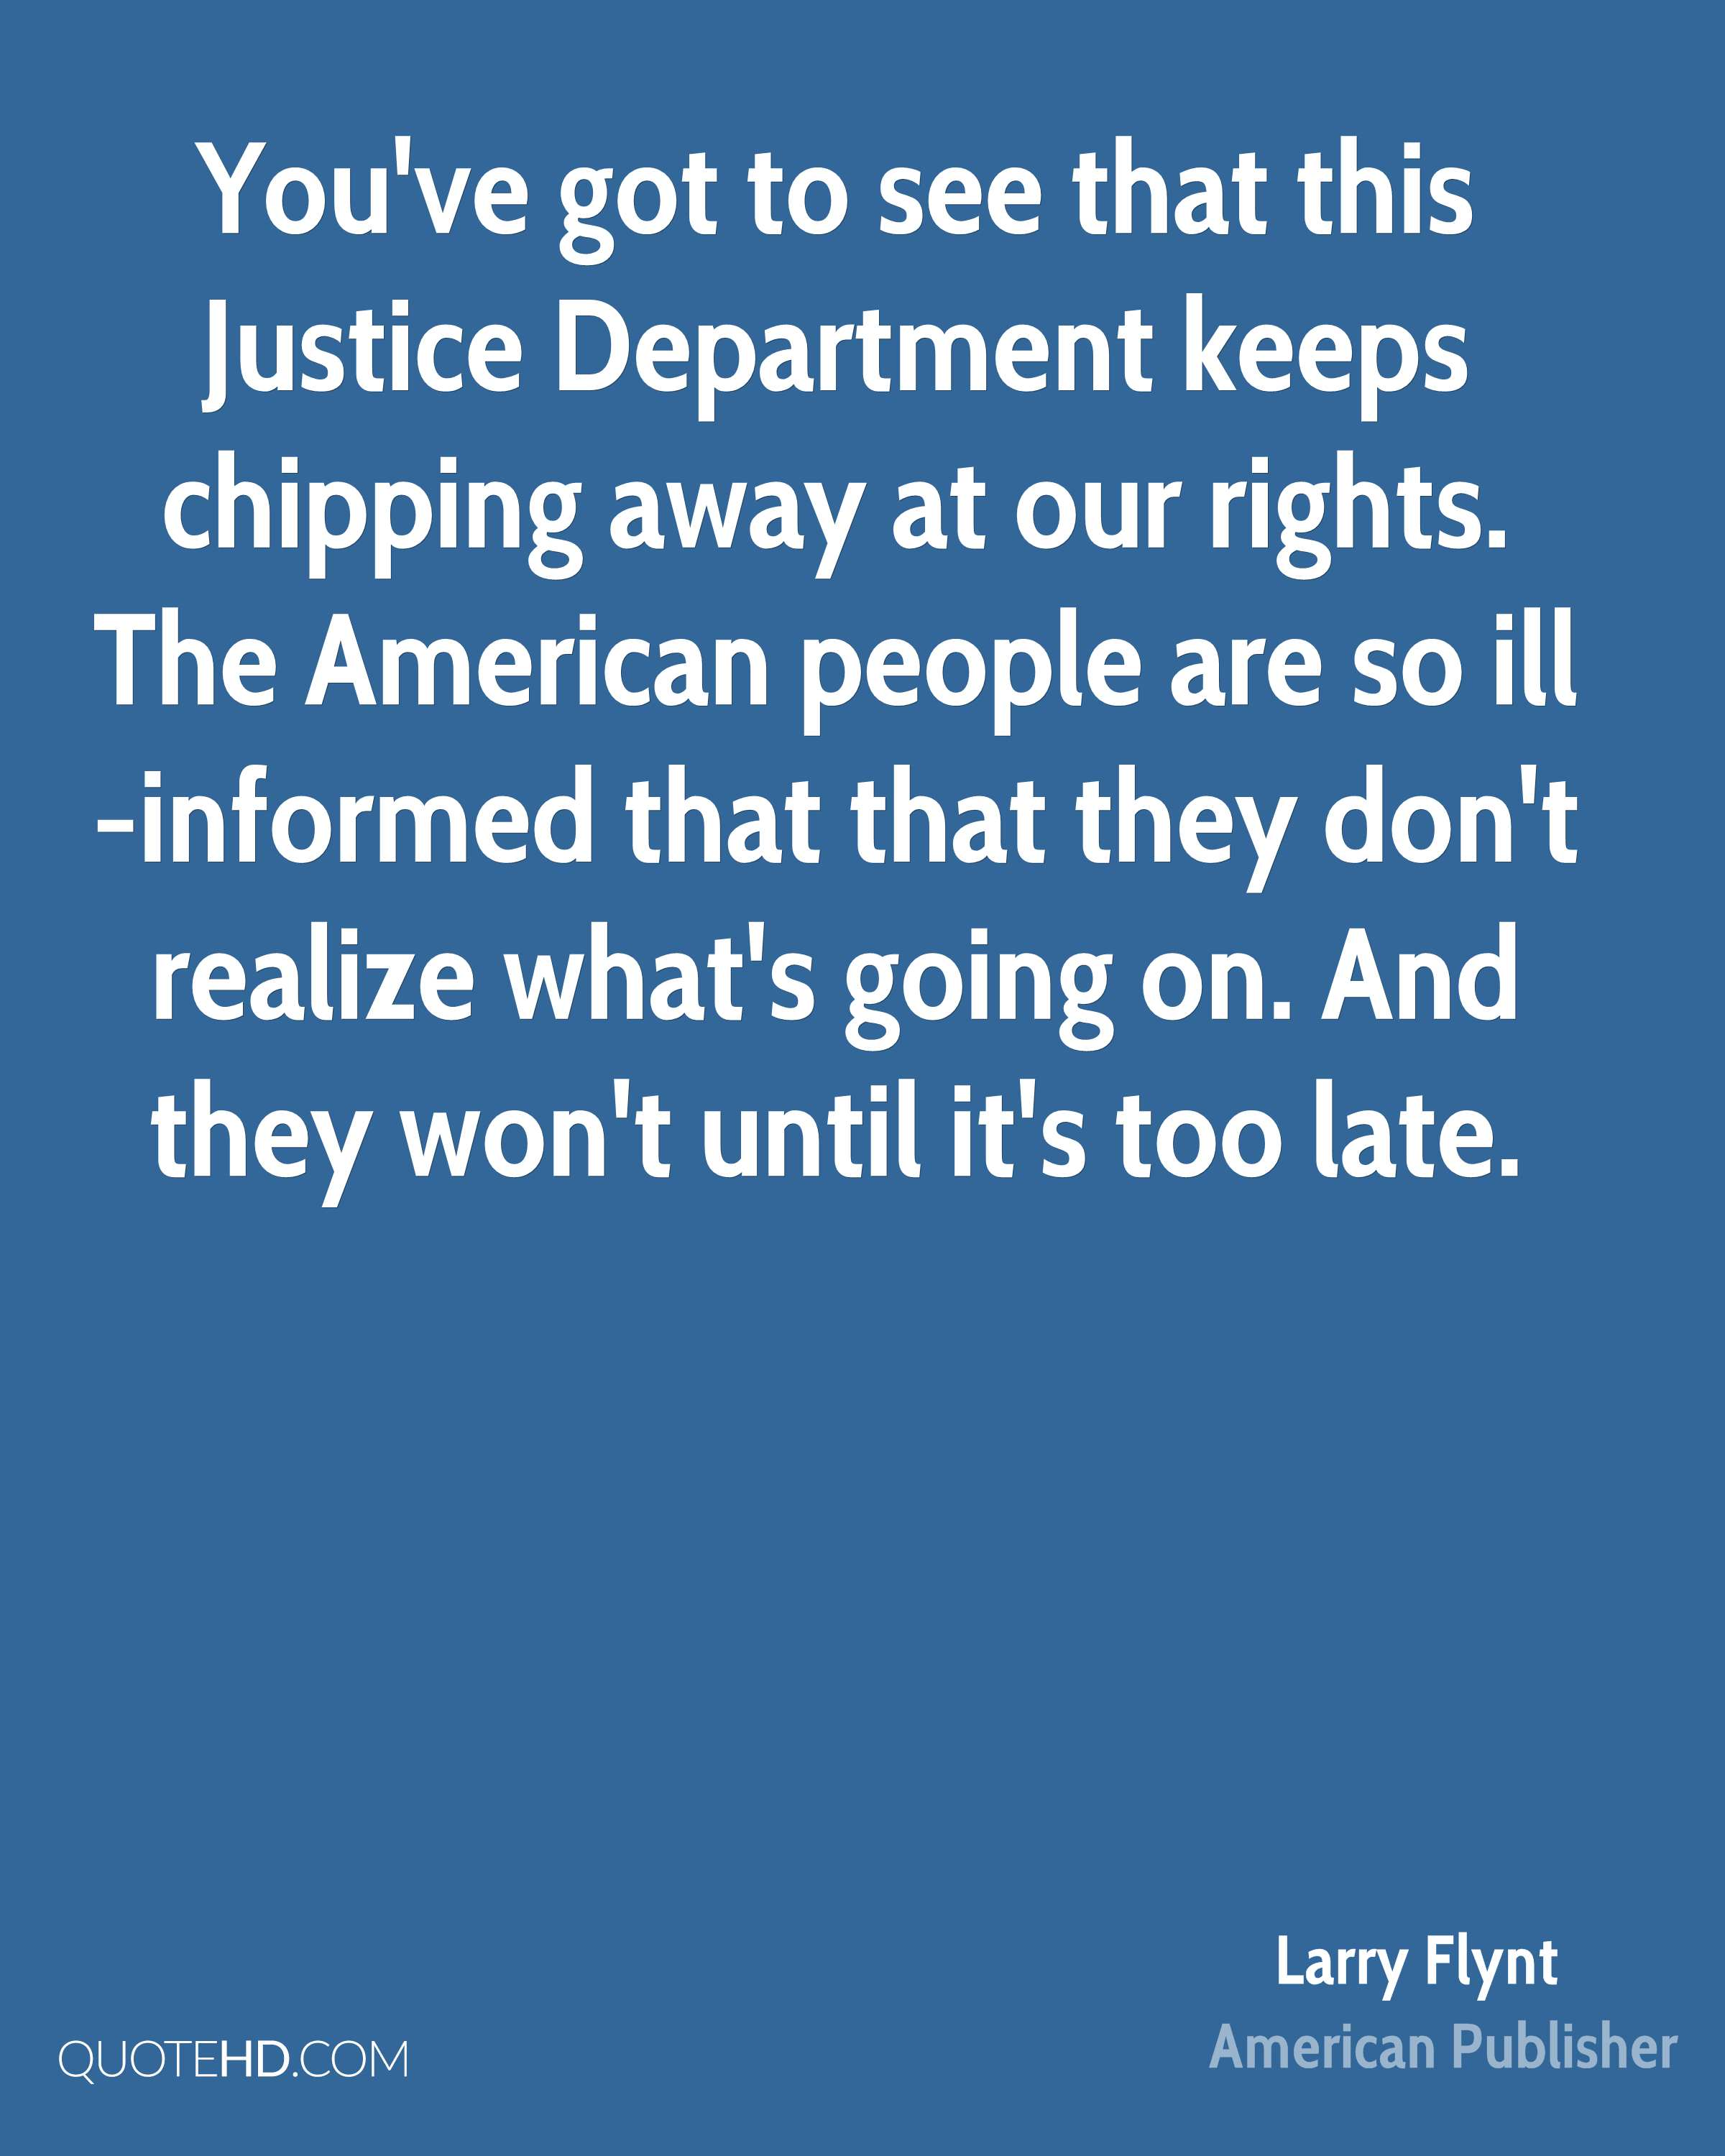 You've got to see that this Justice Department keeps chipping away at our rights. The American people are so ill-informed that that they don't realize what's going on. And they won't until it's too late.